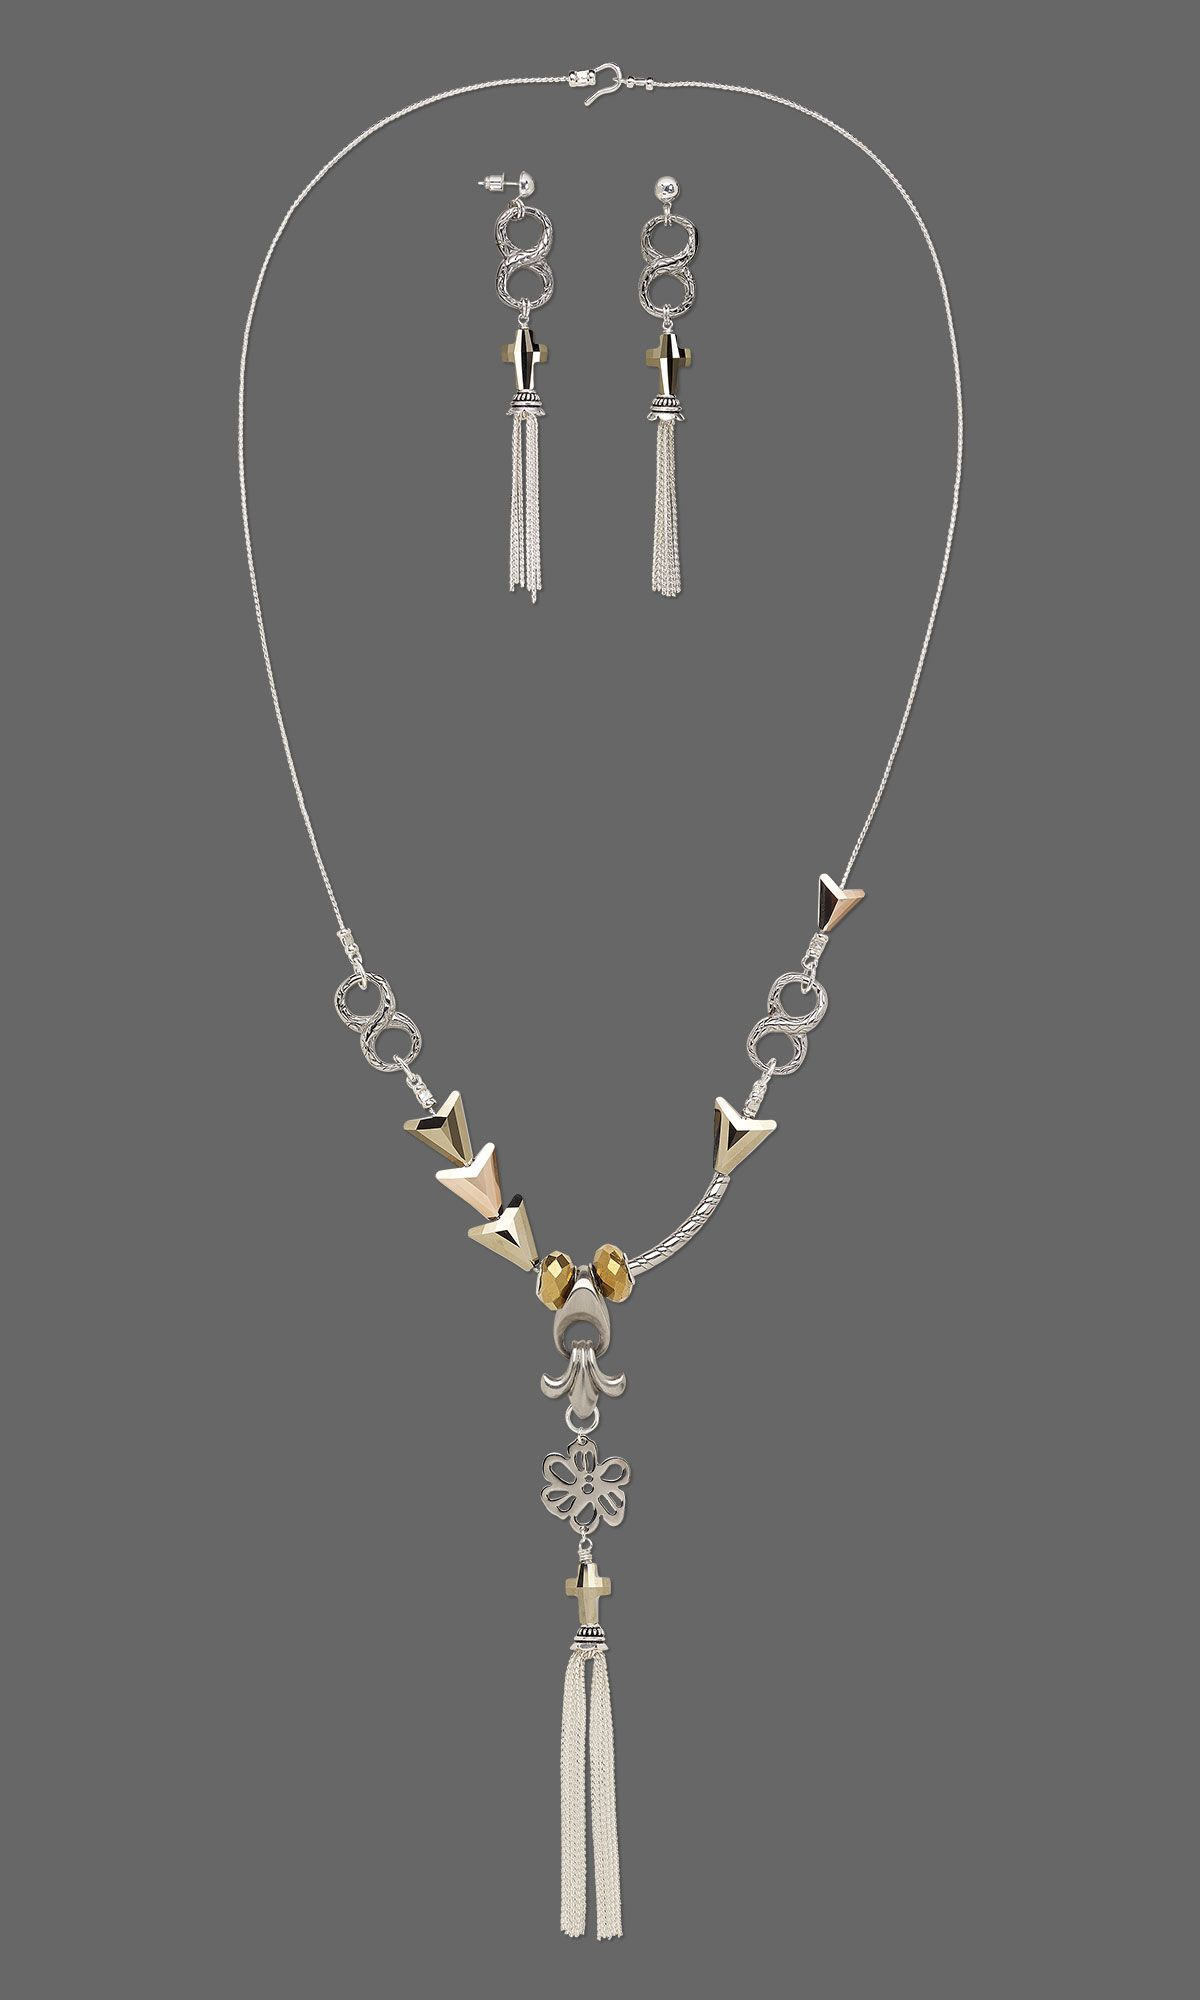 Jewelry design singlestrand necklace and earring set with